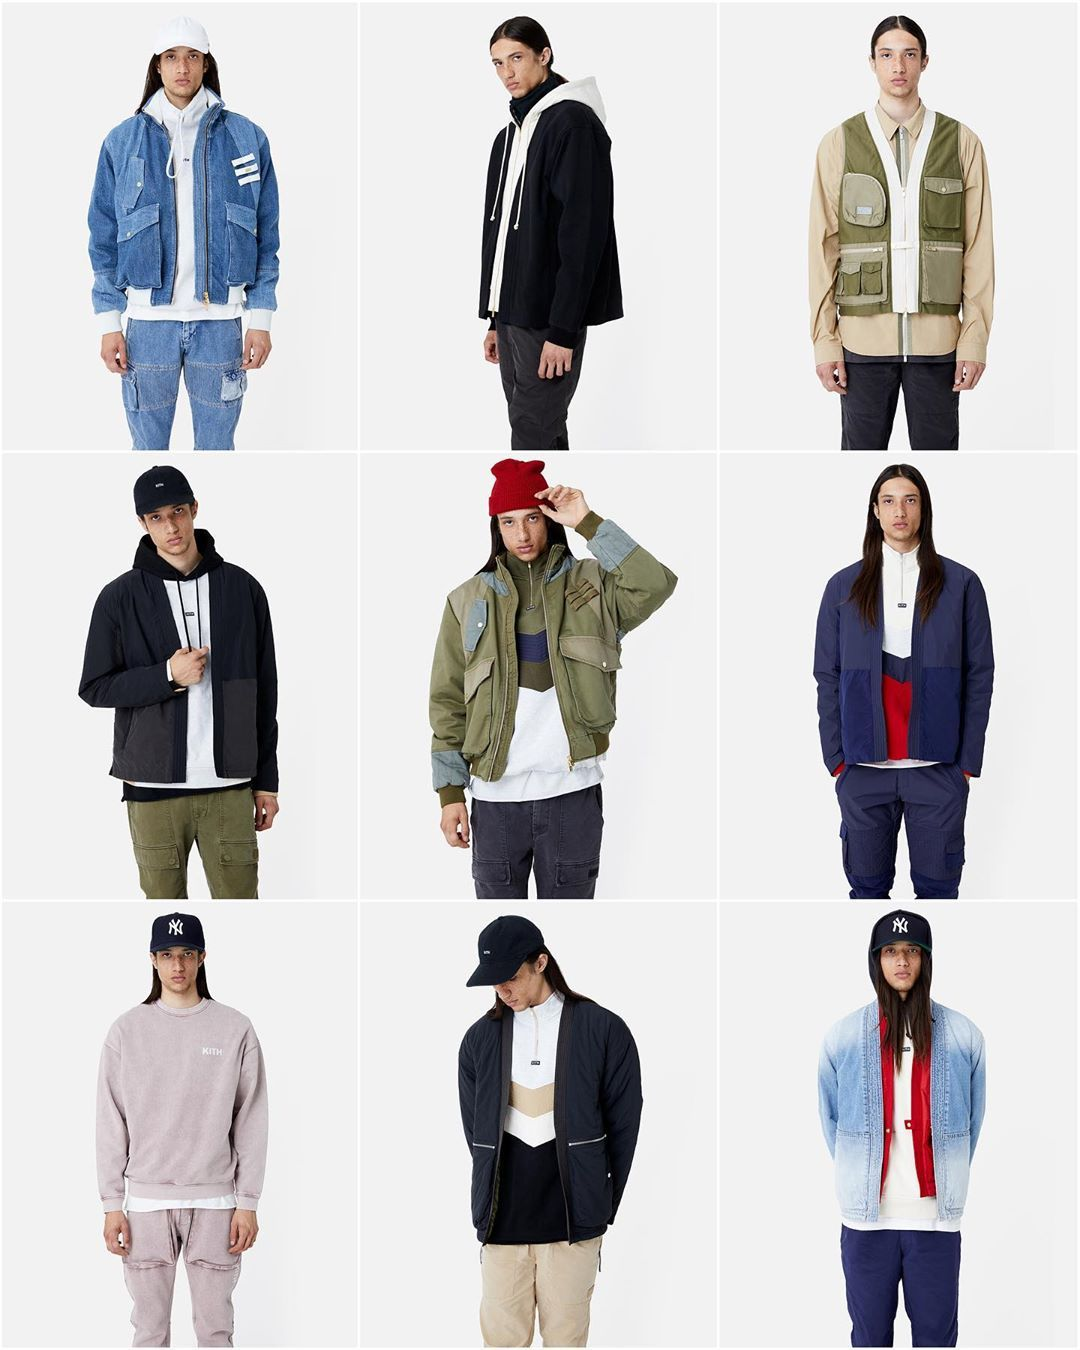 Kith On Instagram Lookbook For Kith Spring 1 Collection Releases This Friday In Stores And Online Kith Fashion Lookbook [ 1350 x 1080 Pixel ]